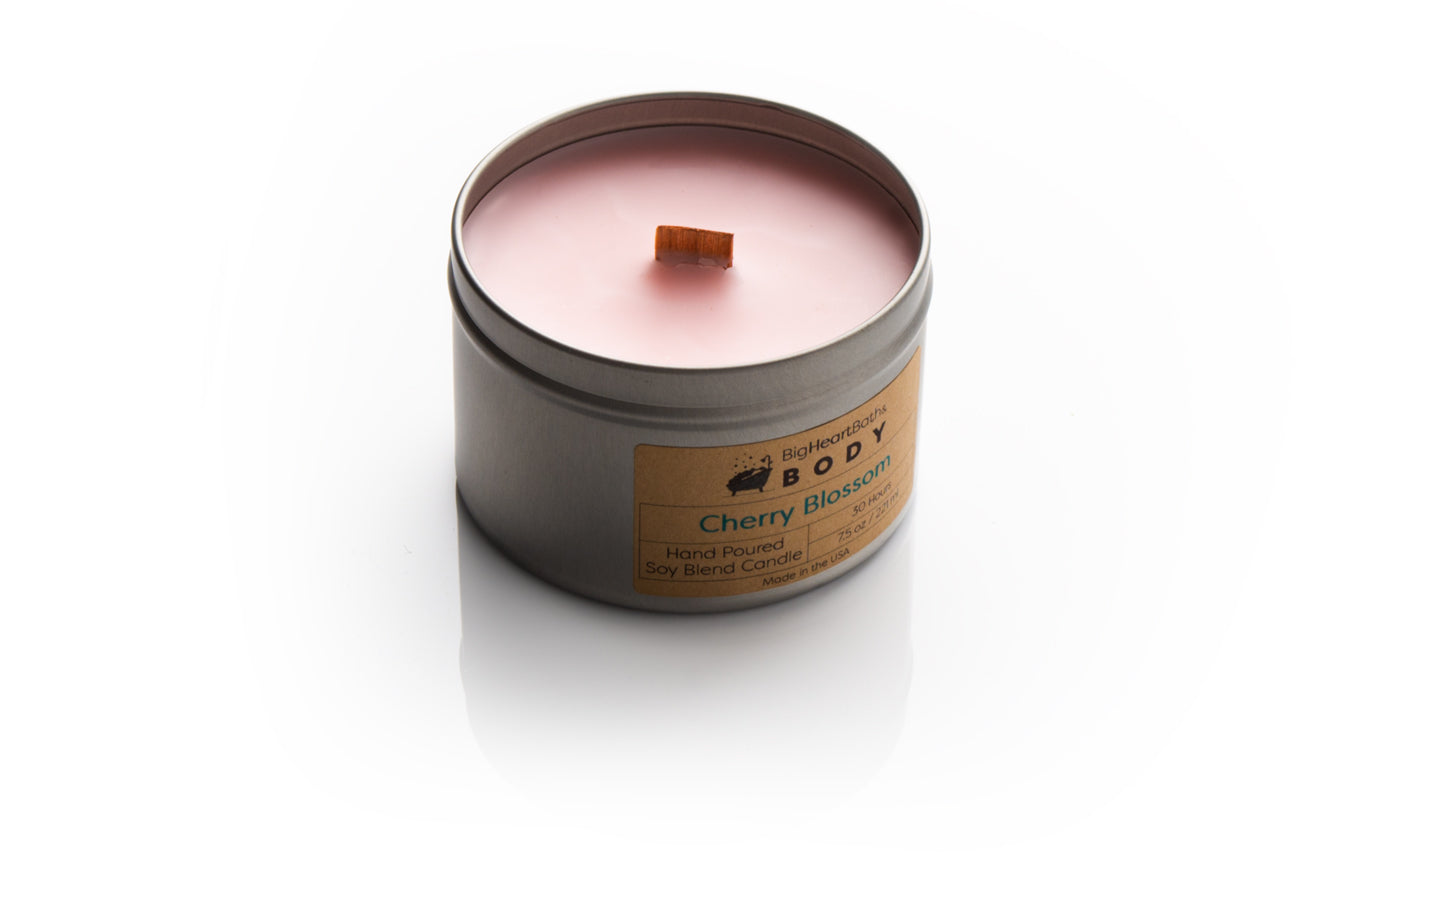 candle, wood wick candle, wooden wick candle, wood wick, scented candle, cherry blossom candle, soy candle, clean burn candle, cherry candle